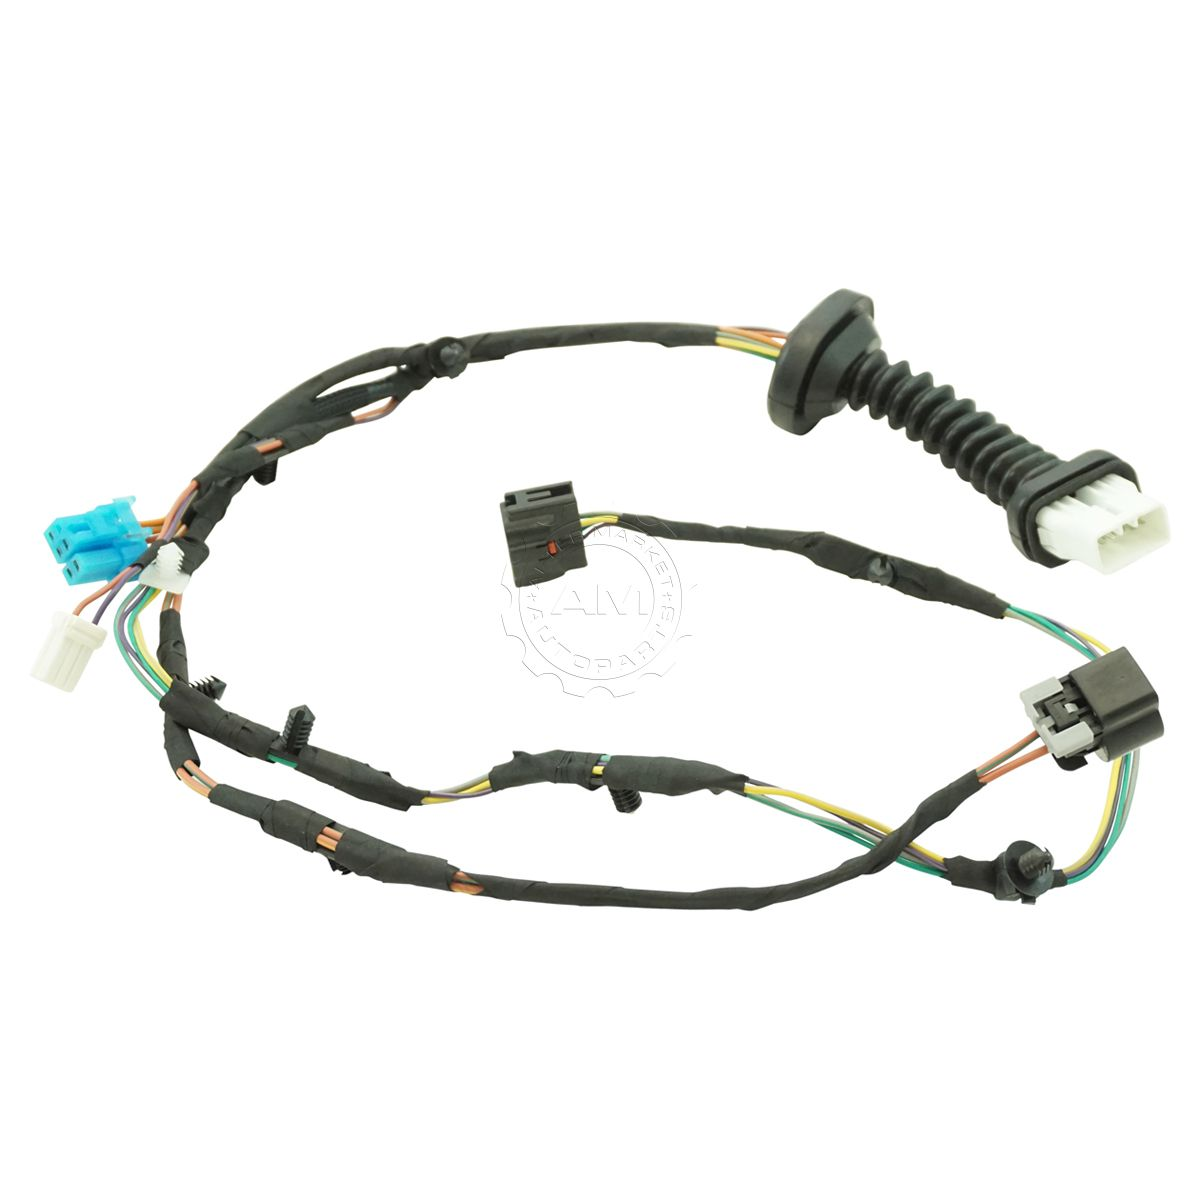 dorman 645 506 rear door wiring harness for 04 05 dodge ram pickupdorman 645 506 rear door wiring harness for 04 05 dodge ram pickup truck